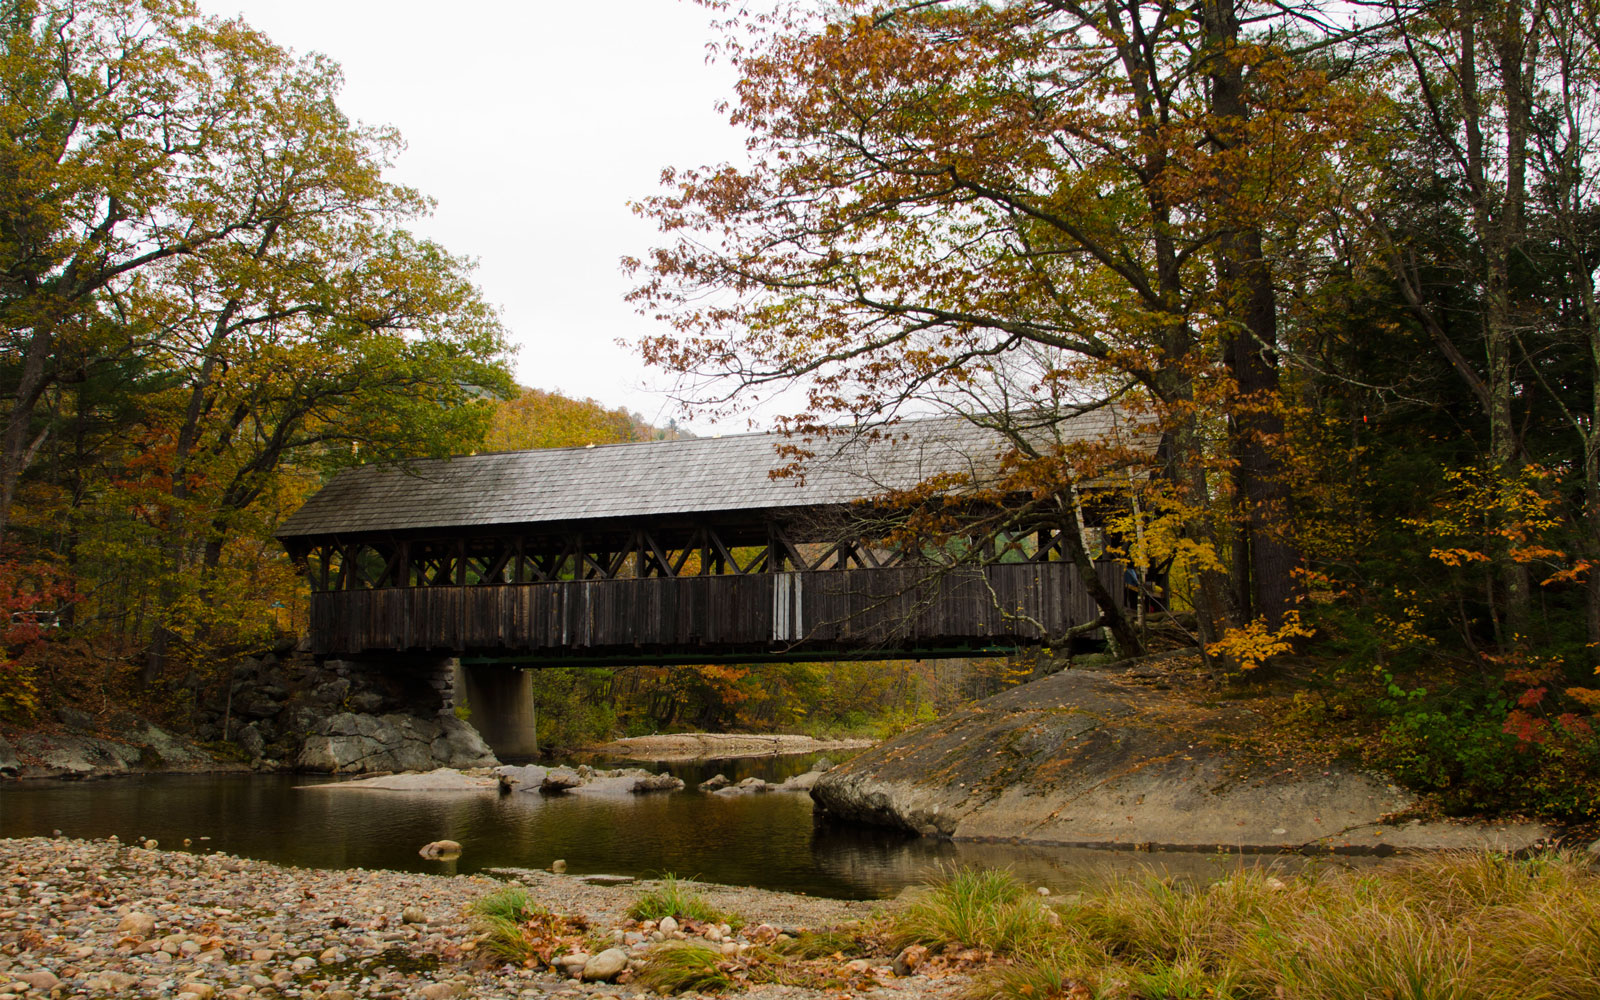 America's Most Beautiful Covered Bridges: Artist's